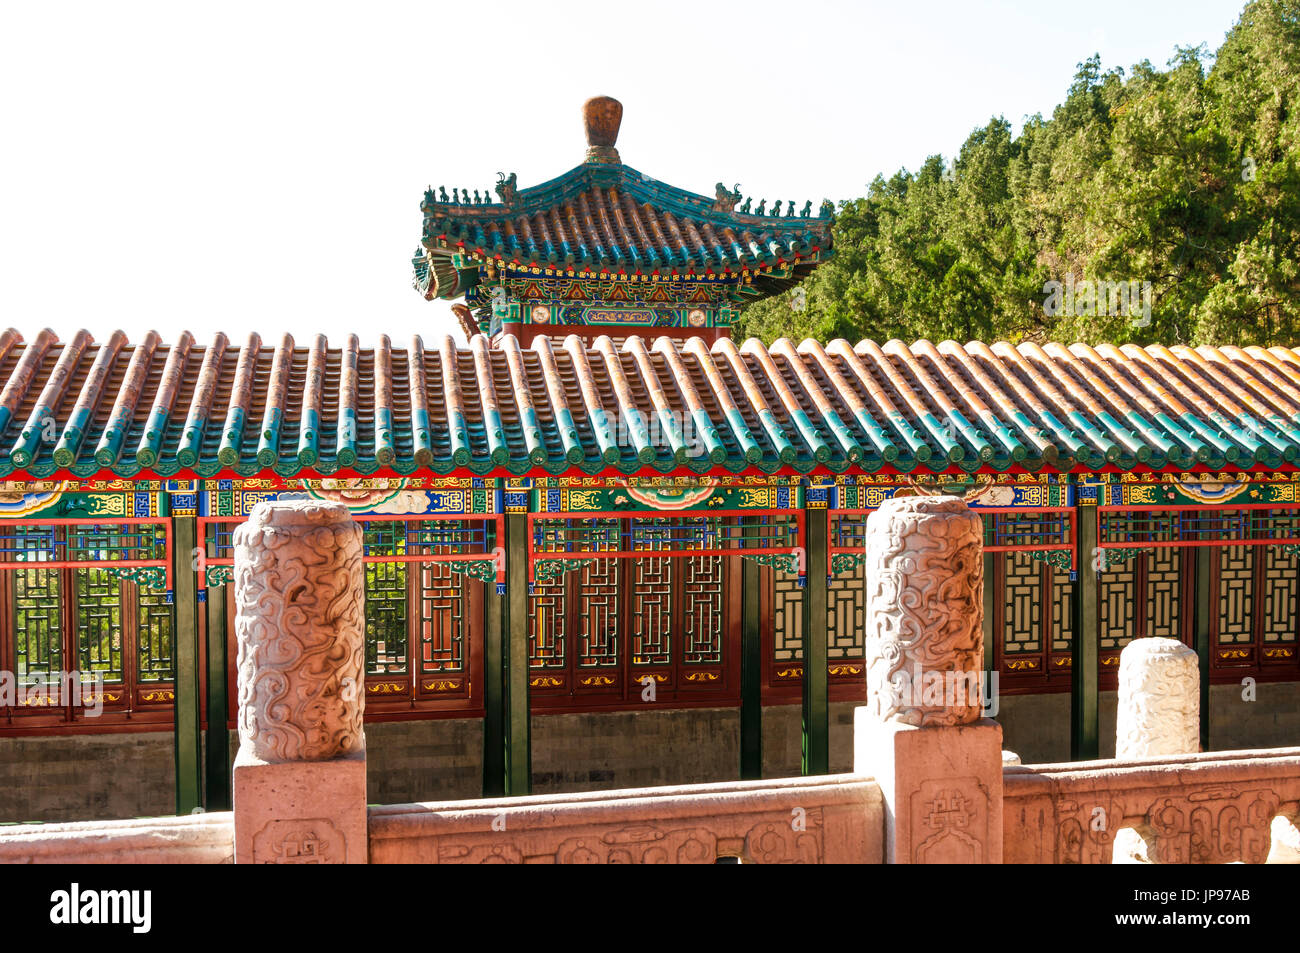 Courtyards, The Pavilion of Buddhist Incense, The Summer Palace, Beijing, China - Stock Image